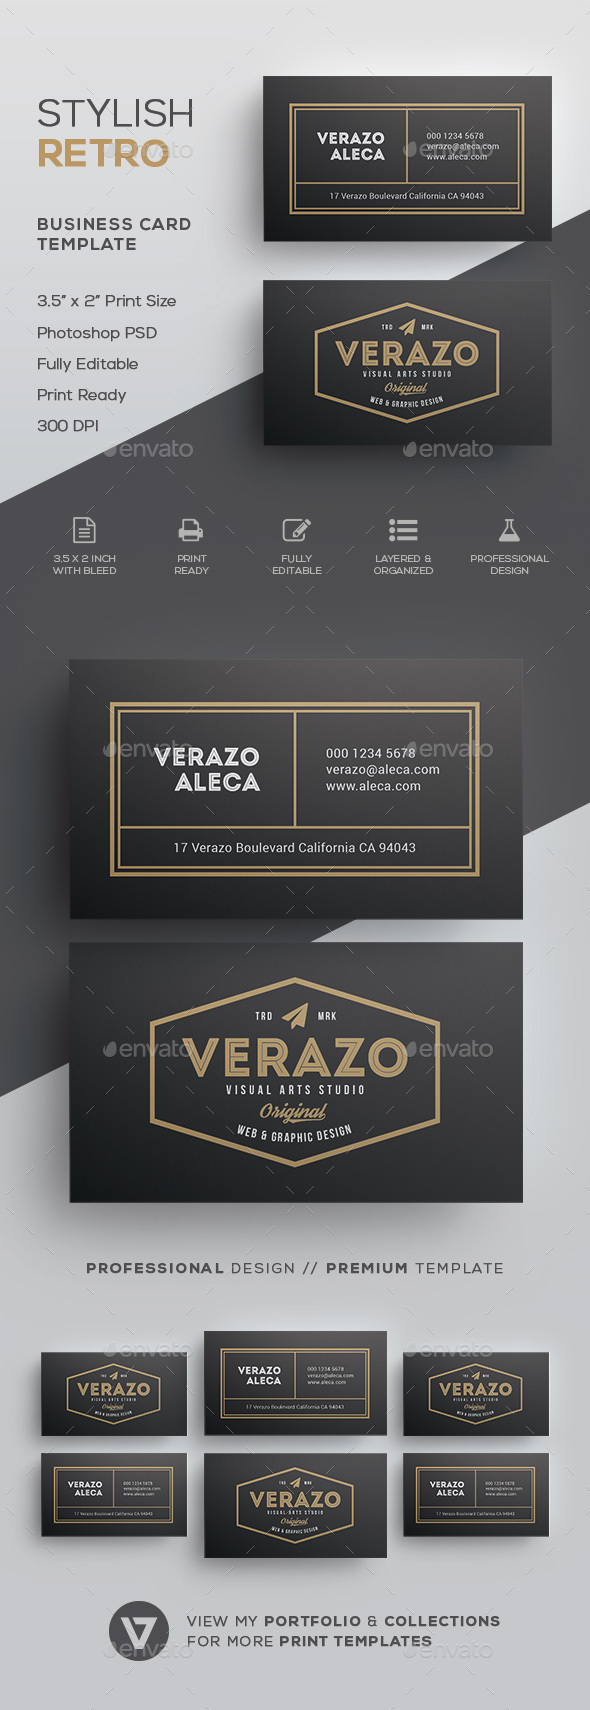 Vintage Business Card Templates Designs From GraphicRiver - Buy business card template